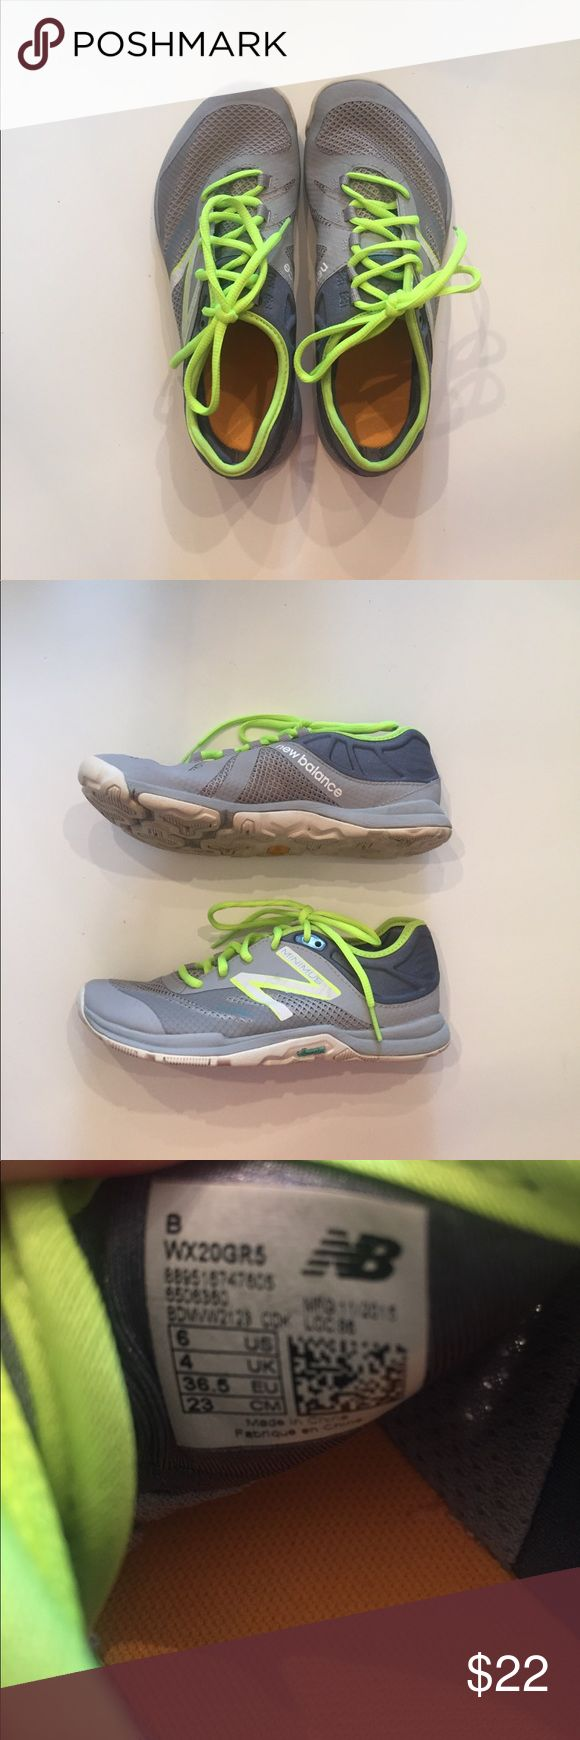 New Balance Minimus Shoes Grey and neon green New Balance Shoes. Only worn for PE. Size 6; may need insoles. Lots of ware left in these. New Balance Shoes Sneakers